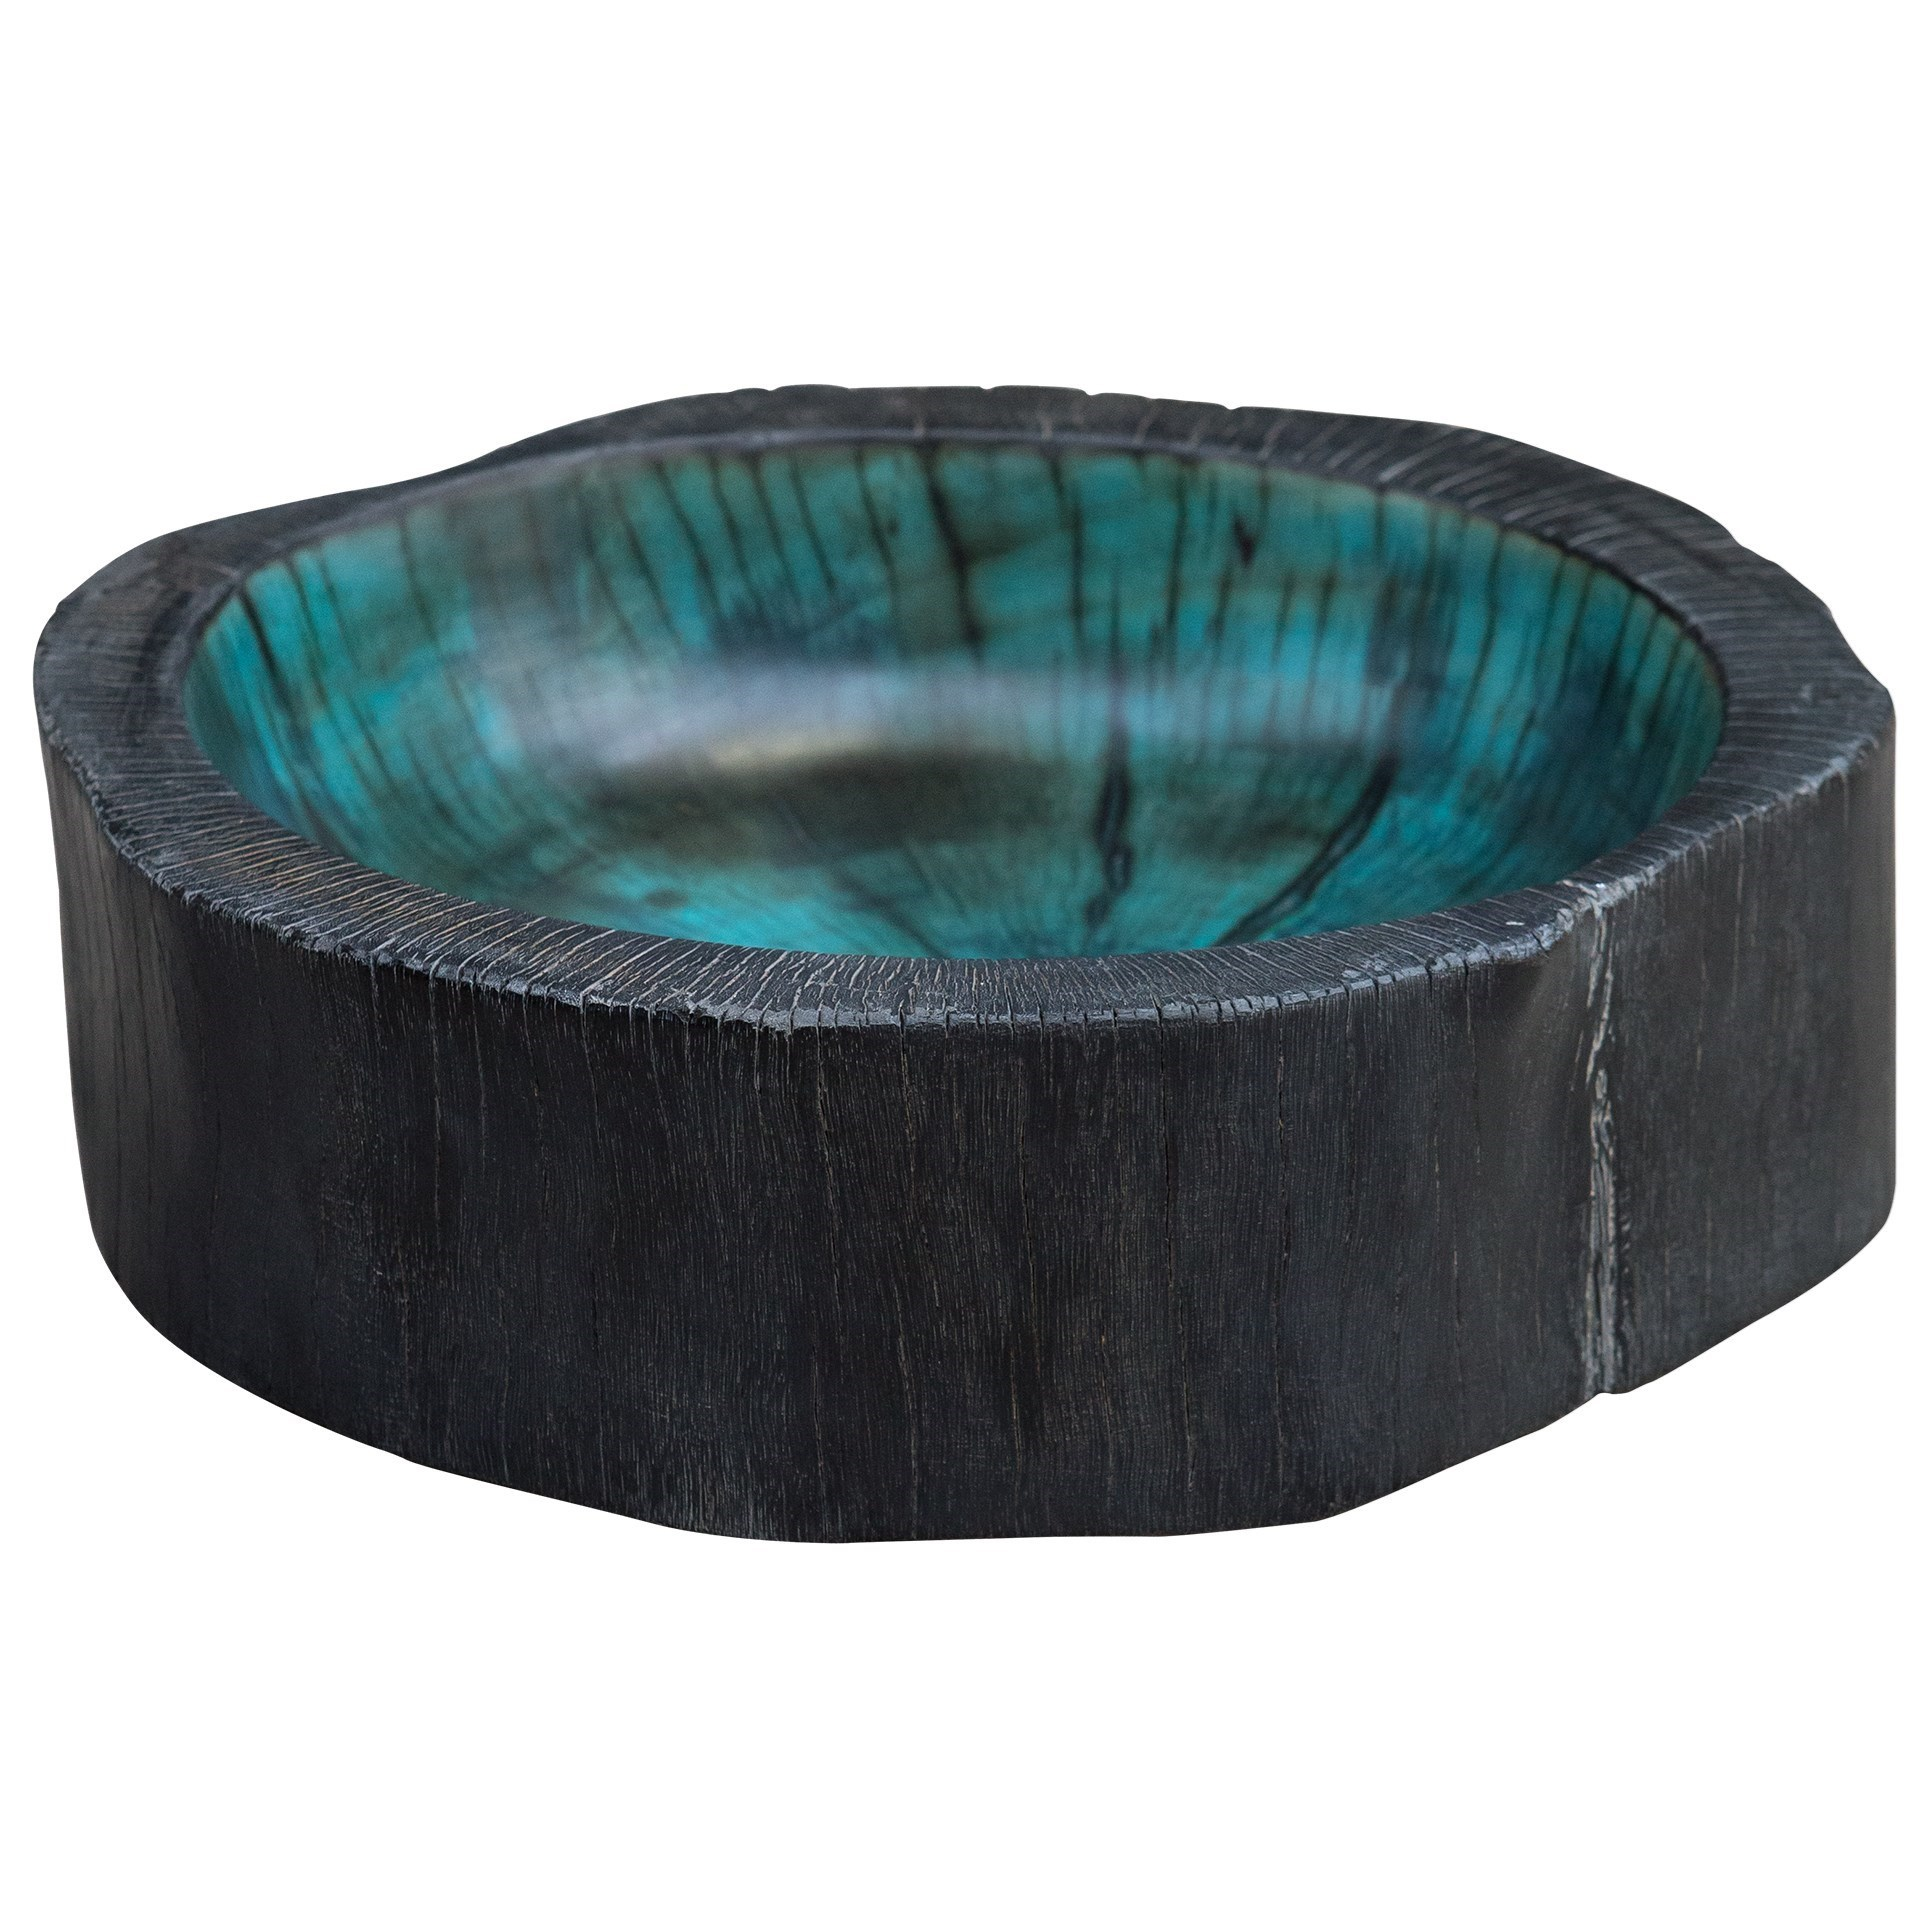 Kona Modern Wood Bowl